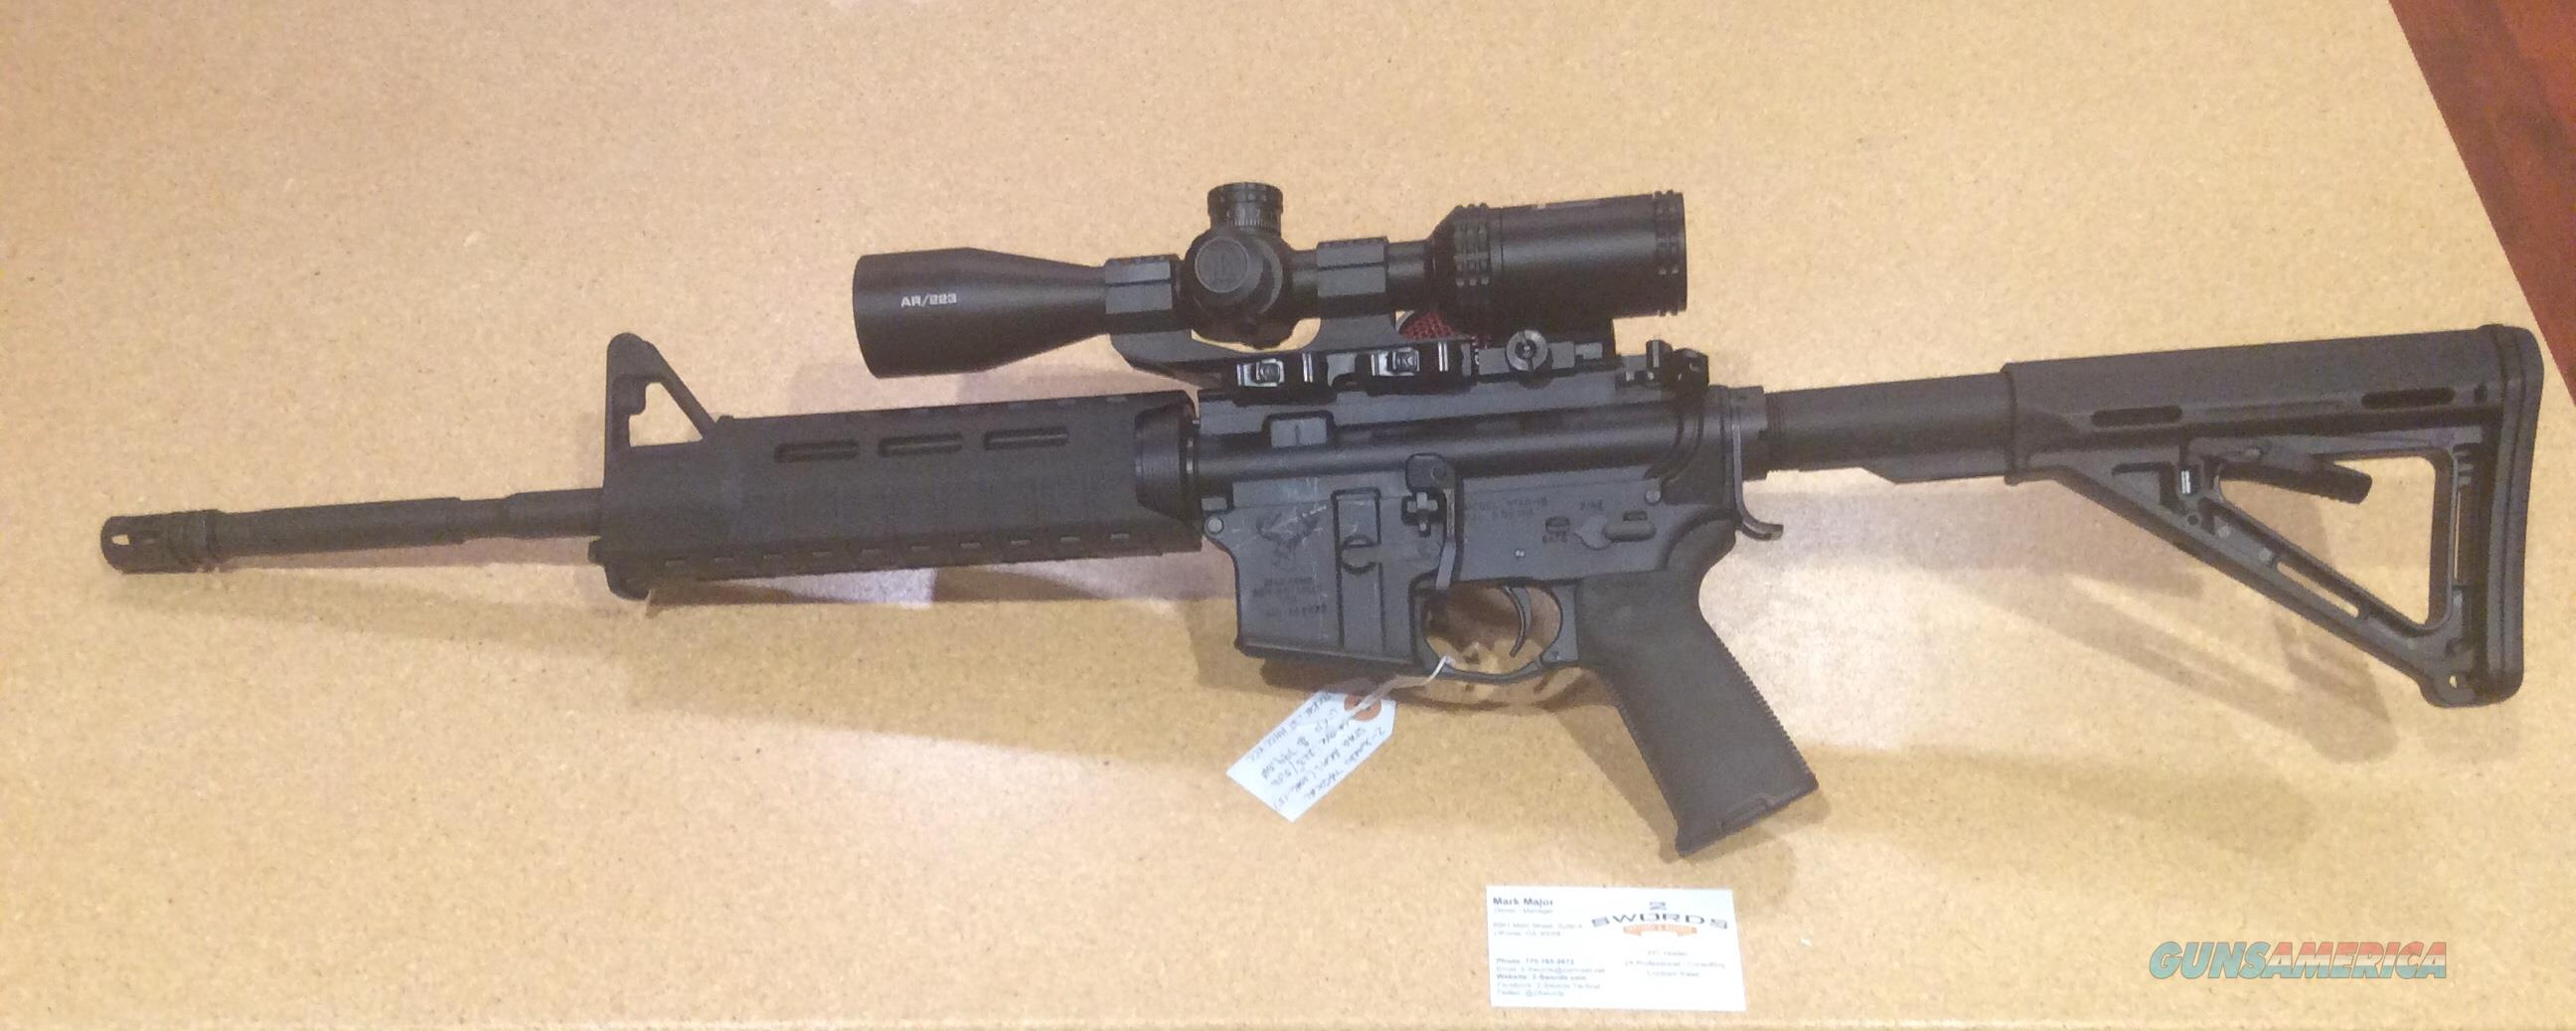 Stag Arms AR-15  - used EXCELLENT CONDITION; Upgraded furniture and optics; PERFECT DUTY RIFLE  Guns > Rifles > Stag Arms > Complete Rifles